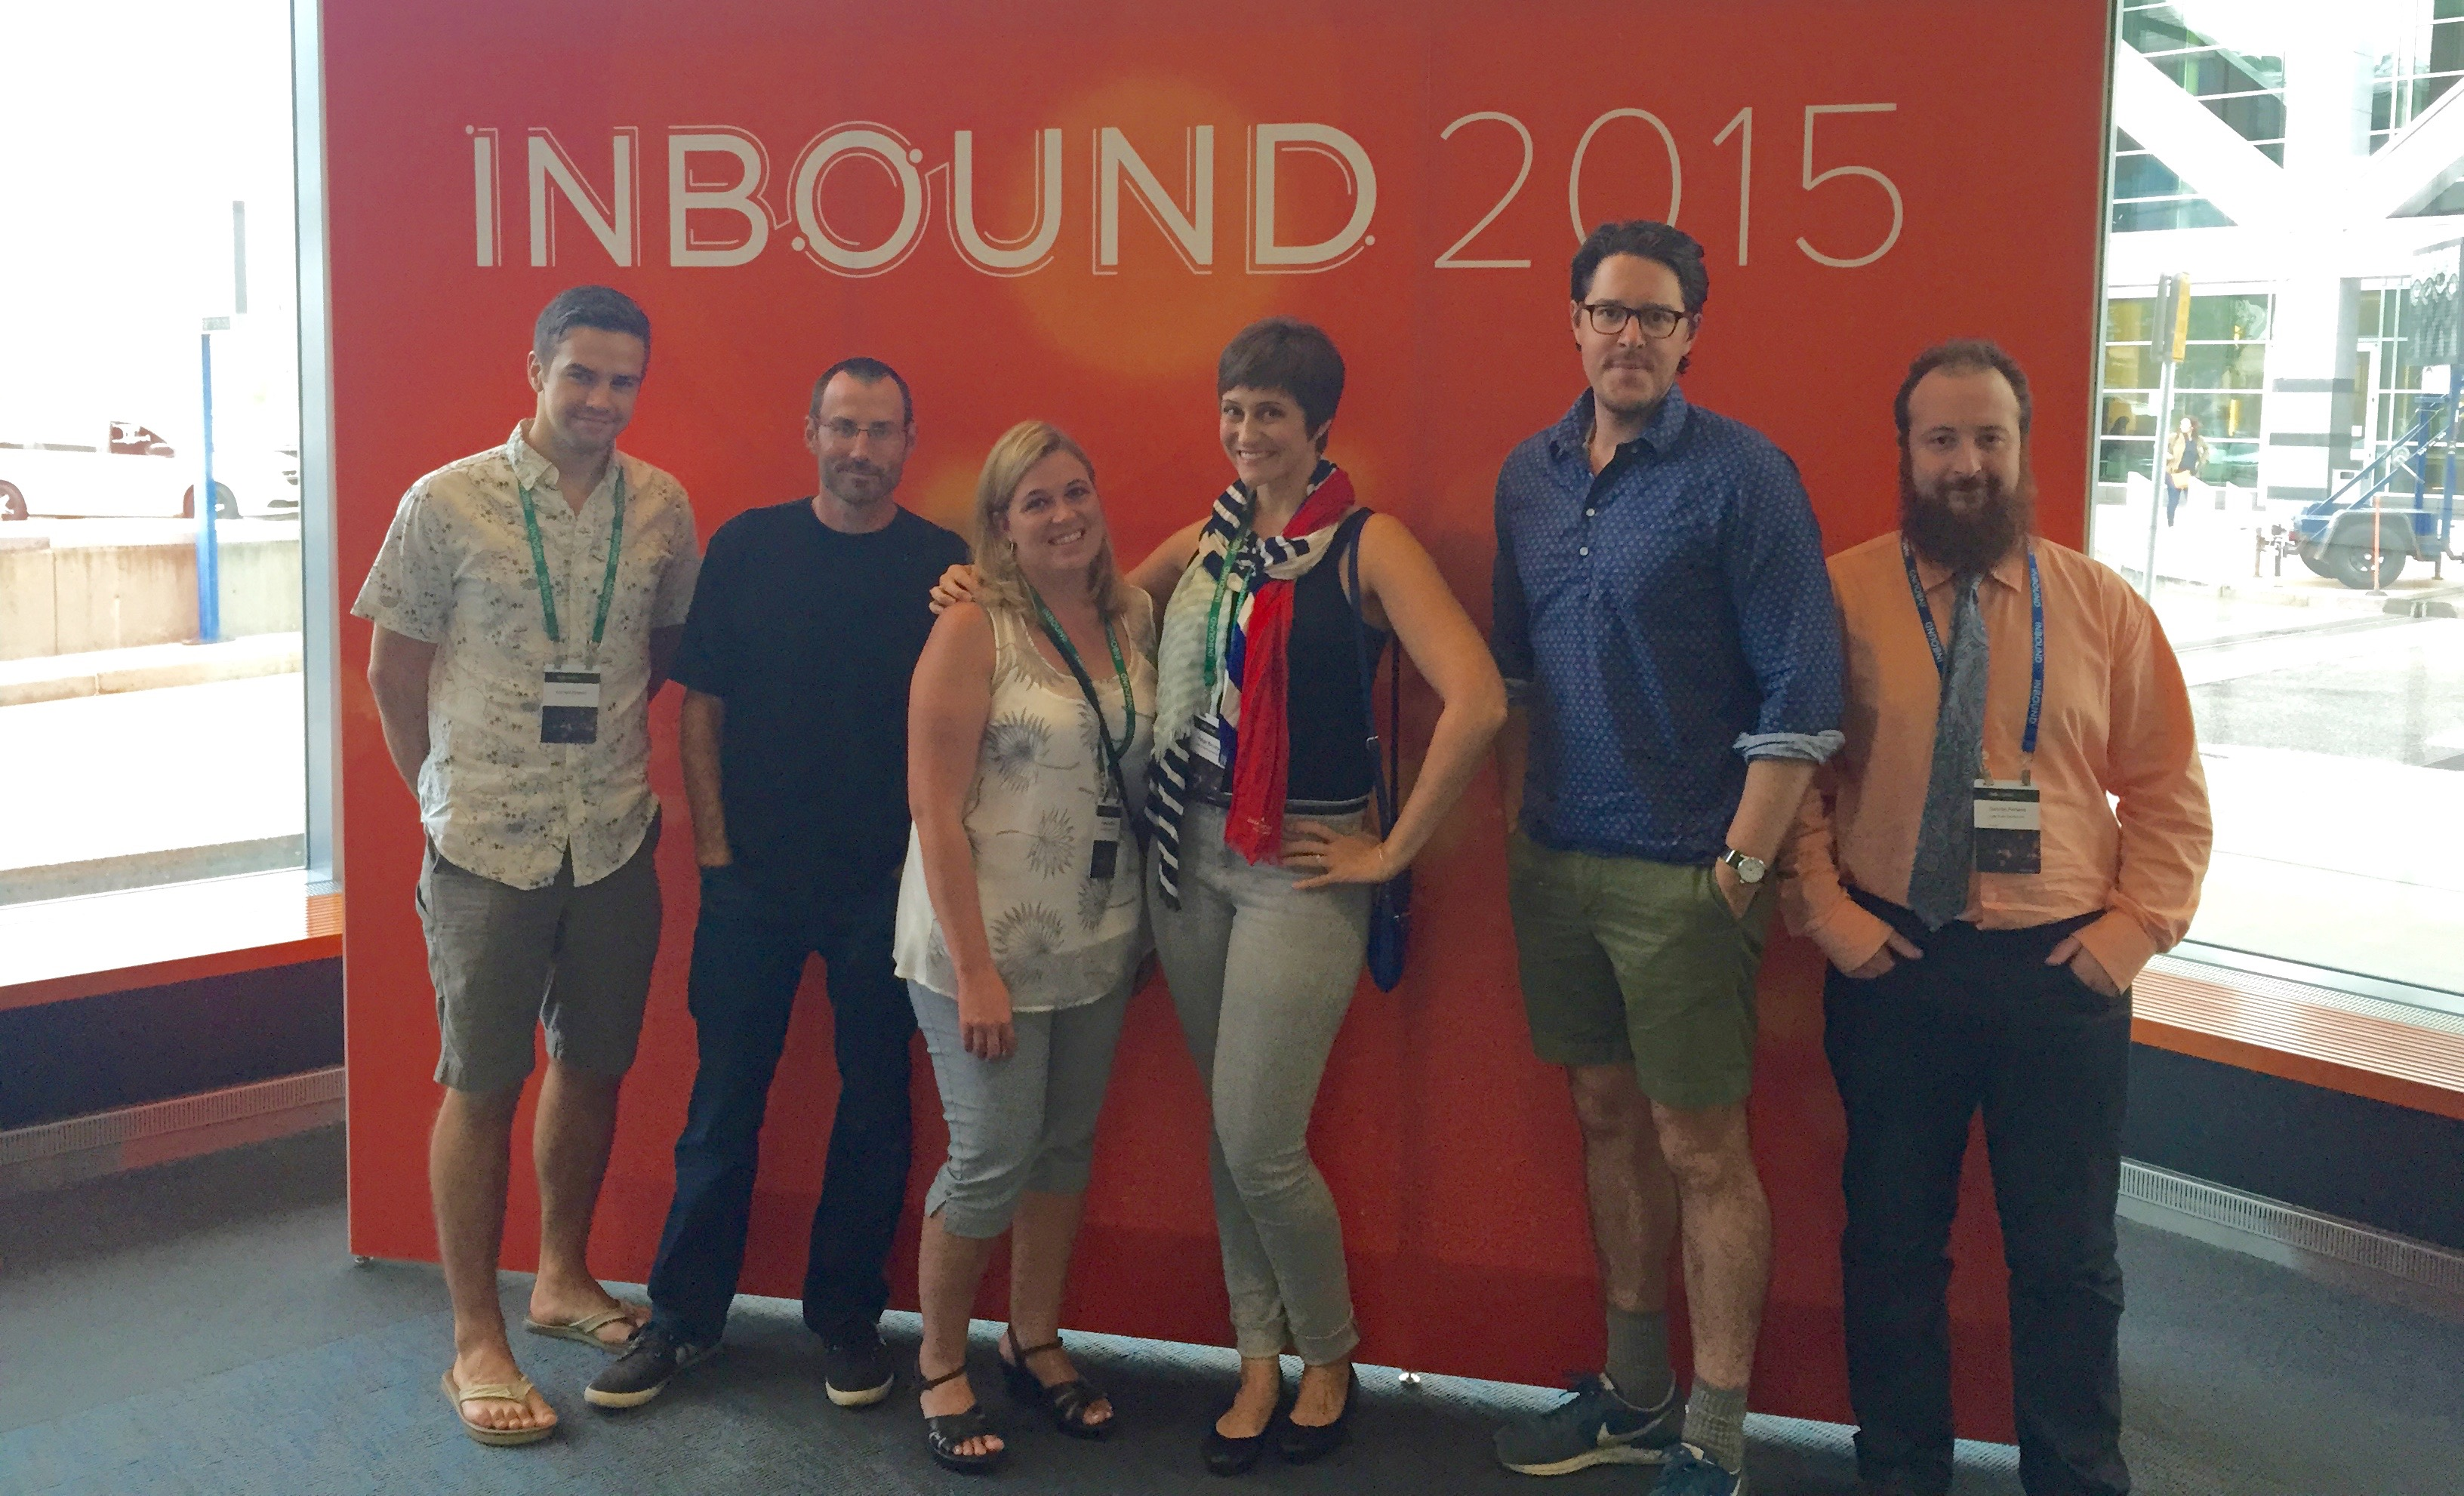 Our HubSpot INBOUND 2015 Conference Takeaways & Deep Thoughts